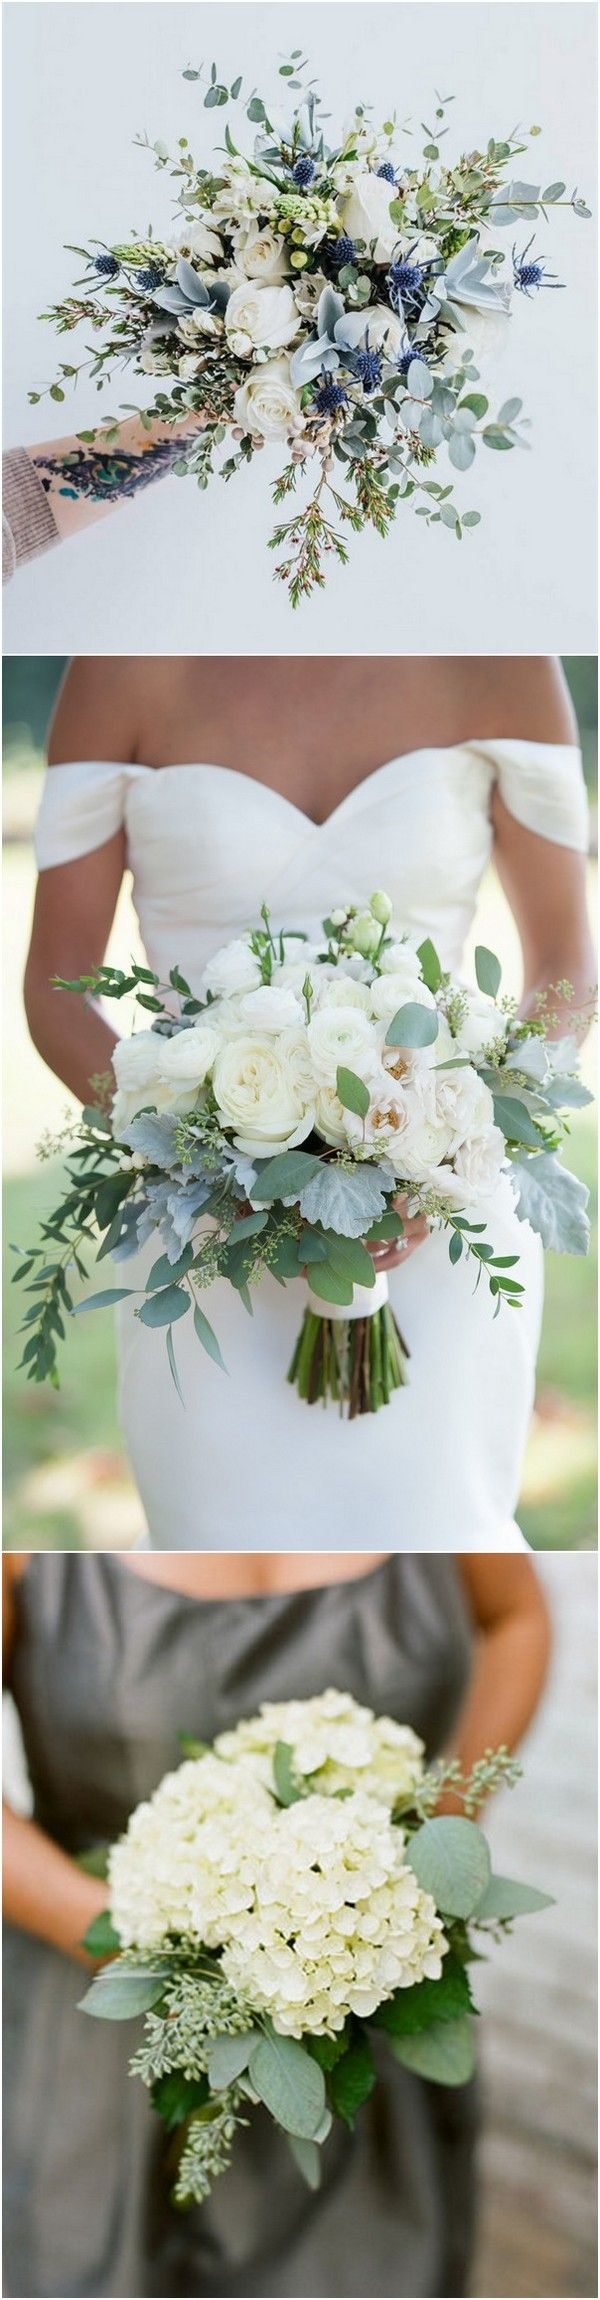 Top white and green wedding bouquet ideas youull love weddings